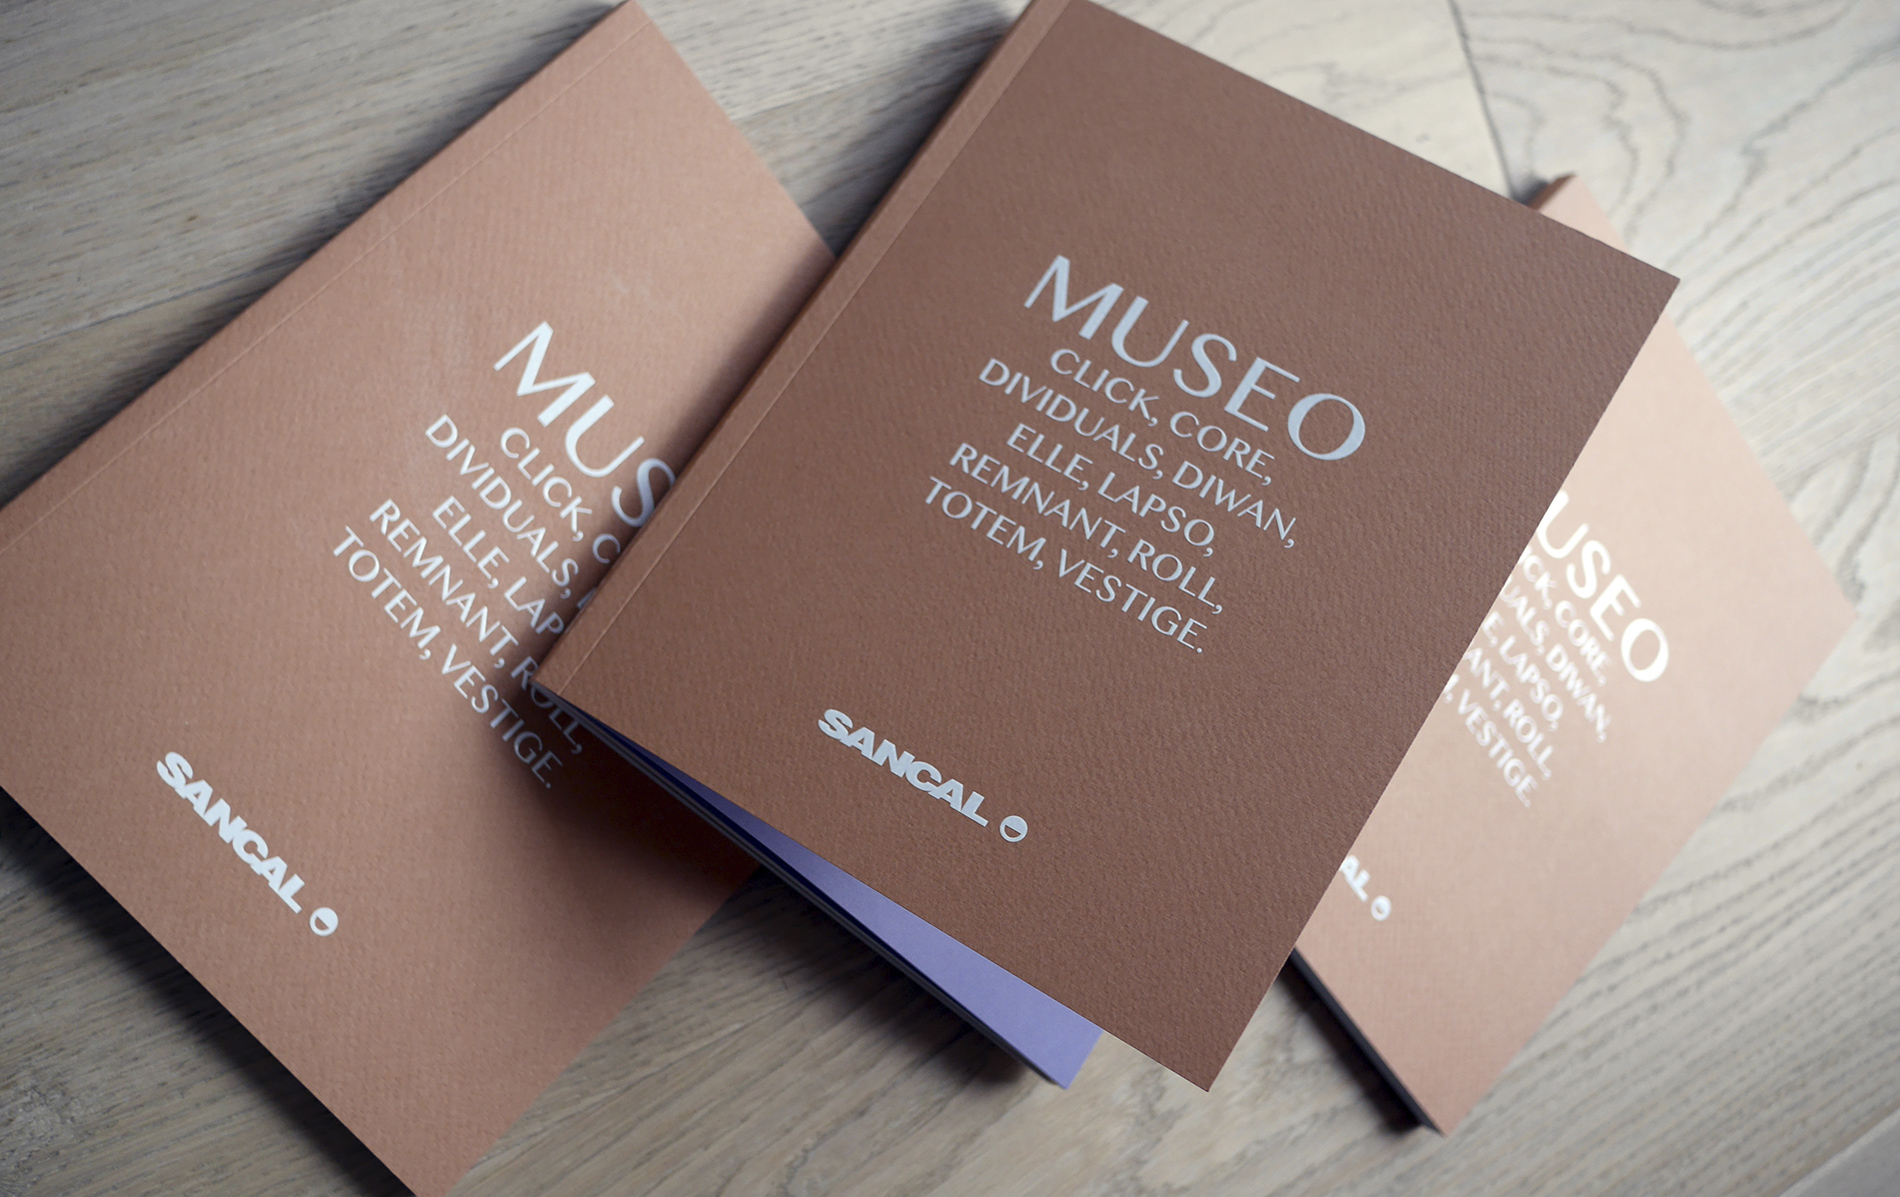 Museo Collection catalogue is available right now!